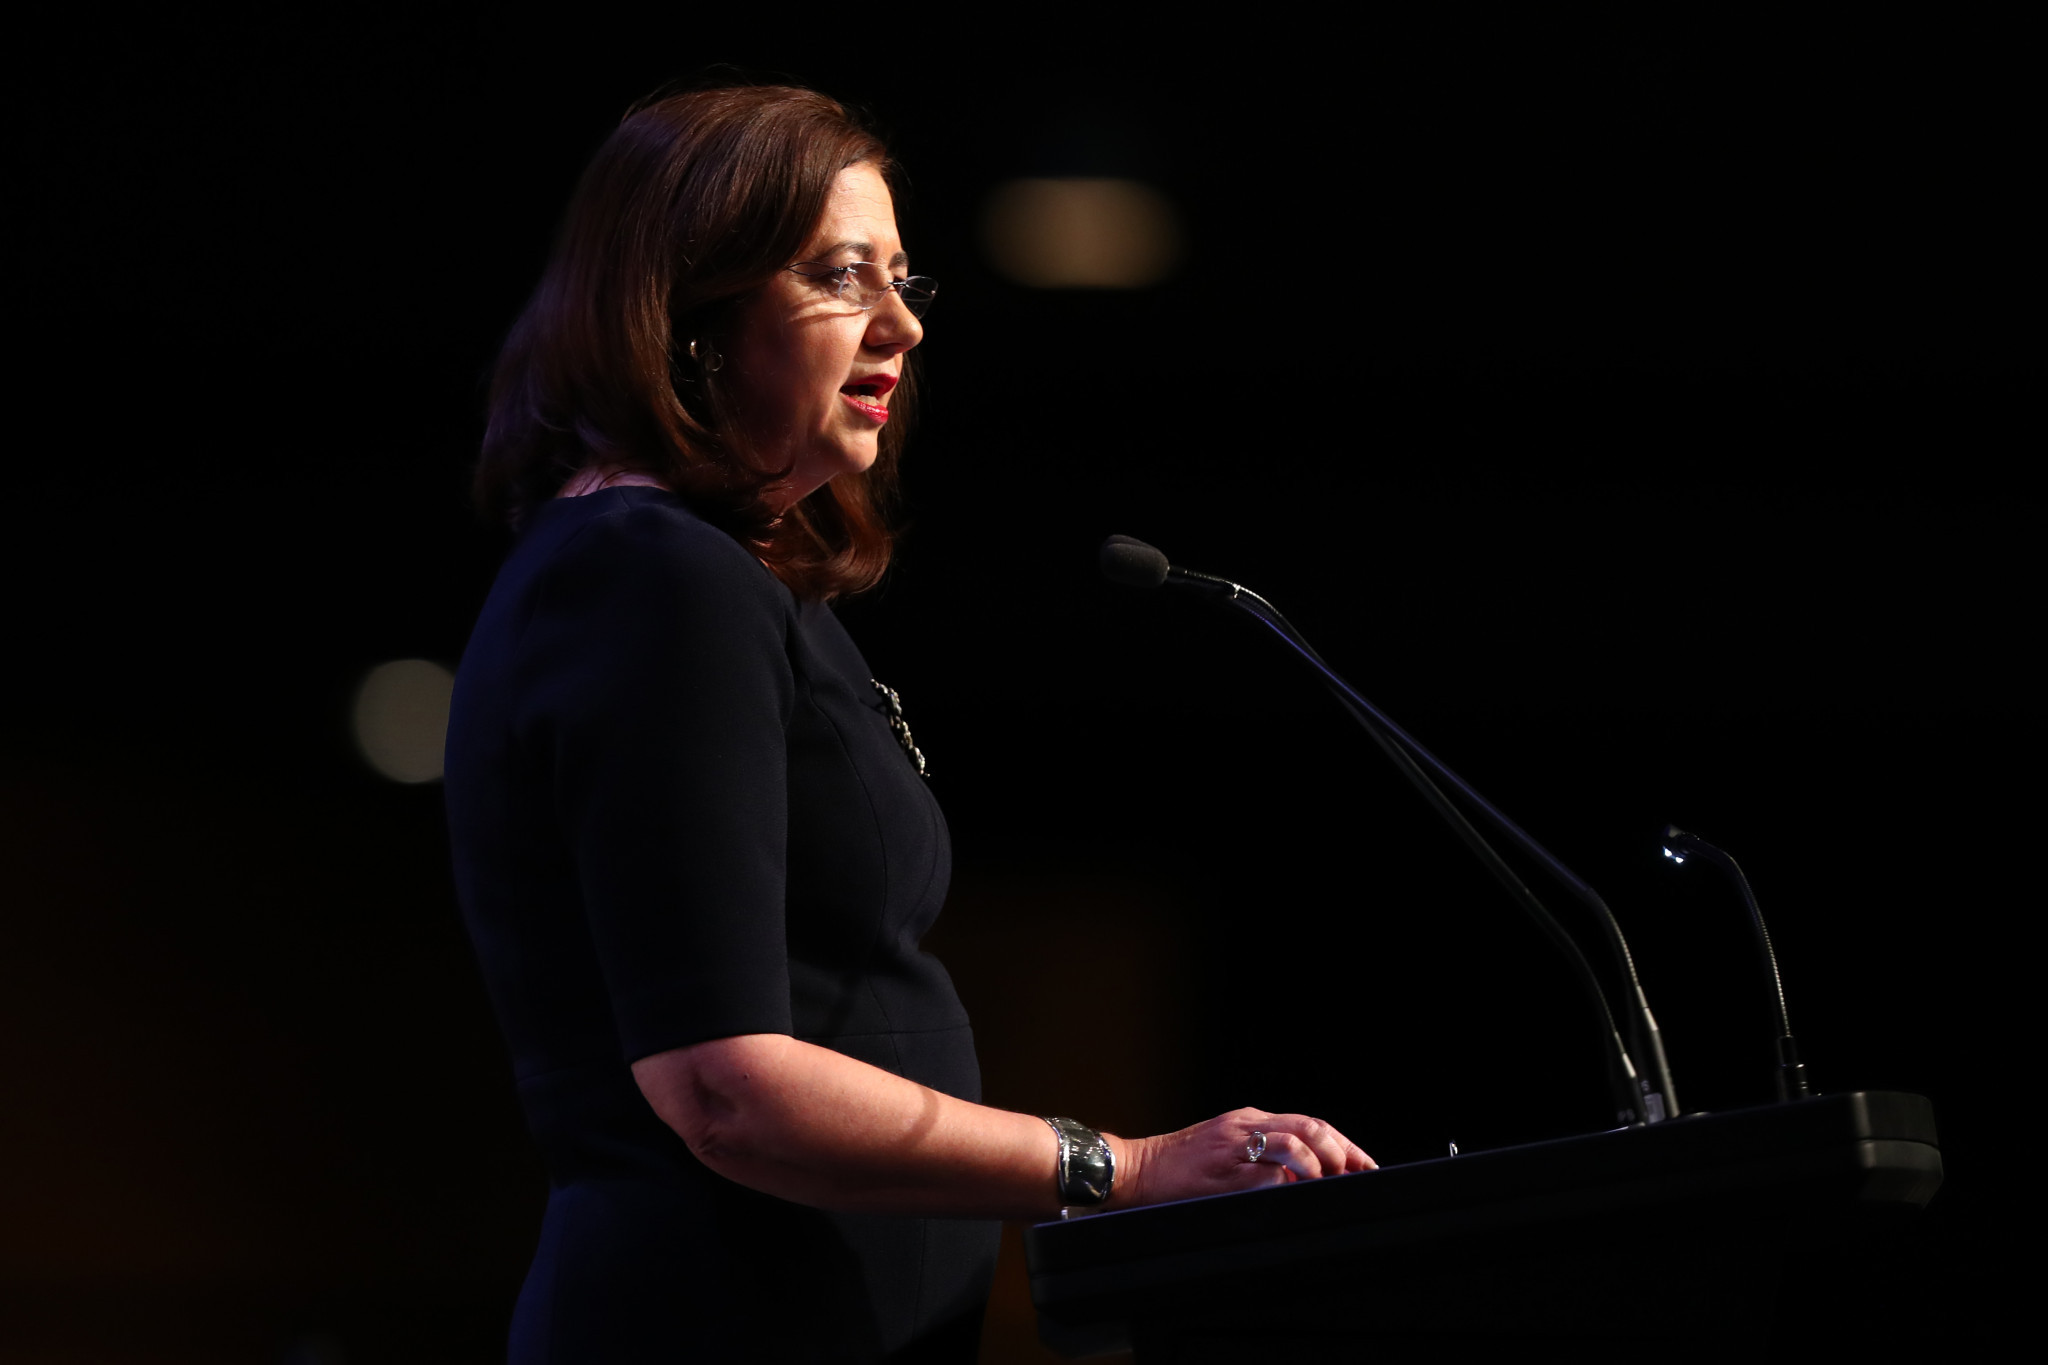 Queensland Premier Annastacia Palaszczuk will chair the new taskforce investigating whether the state should bid for the 2032 Olympic and Paralympic Games ©Getty Images